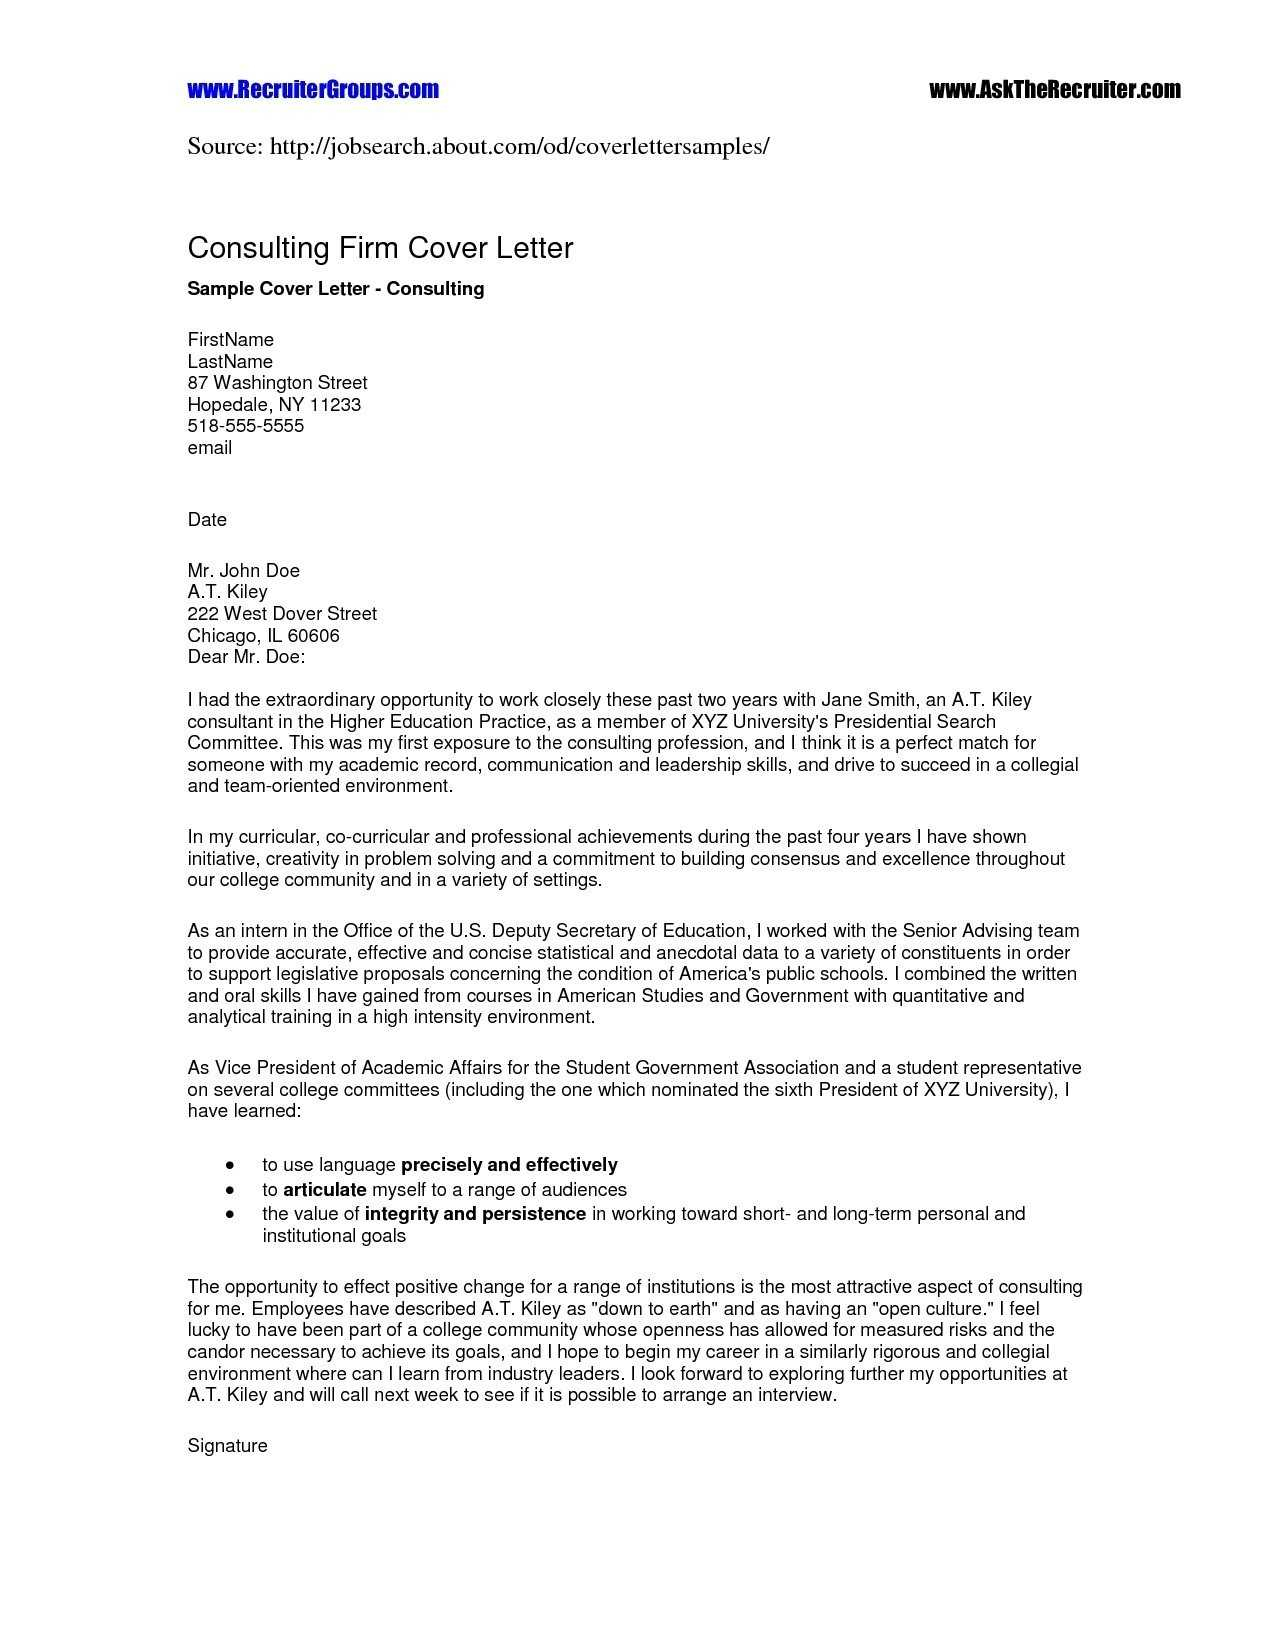 Criminal Record Disclosure Letter Template - Sample Background Check Report and Job Application Letter format